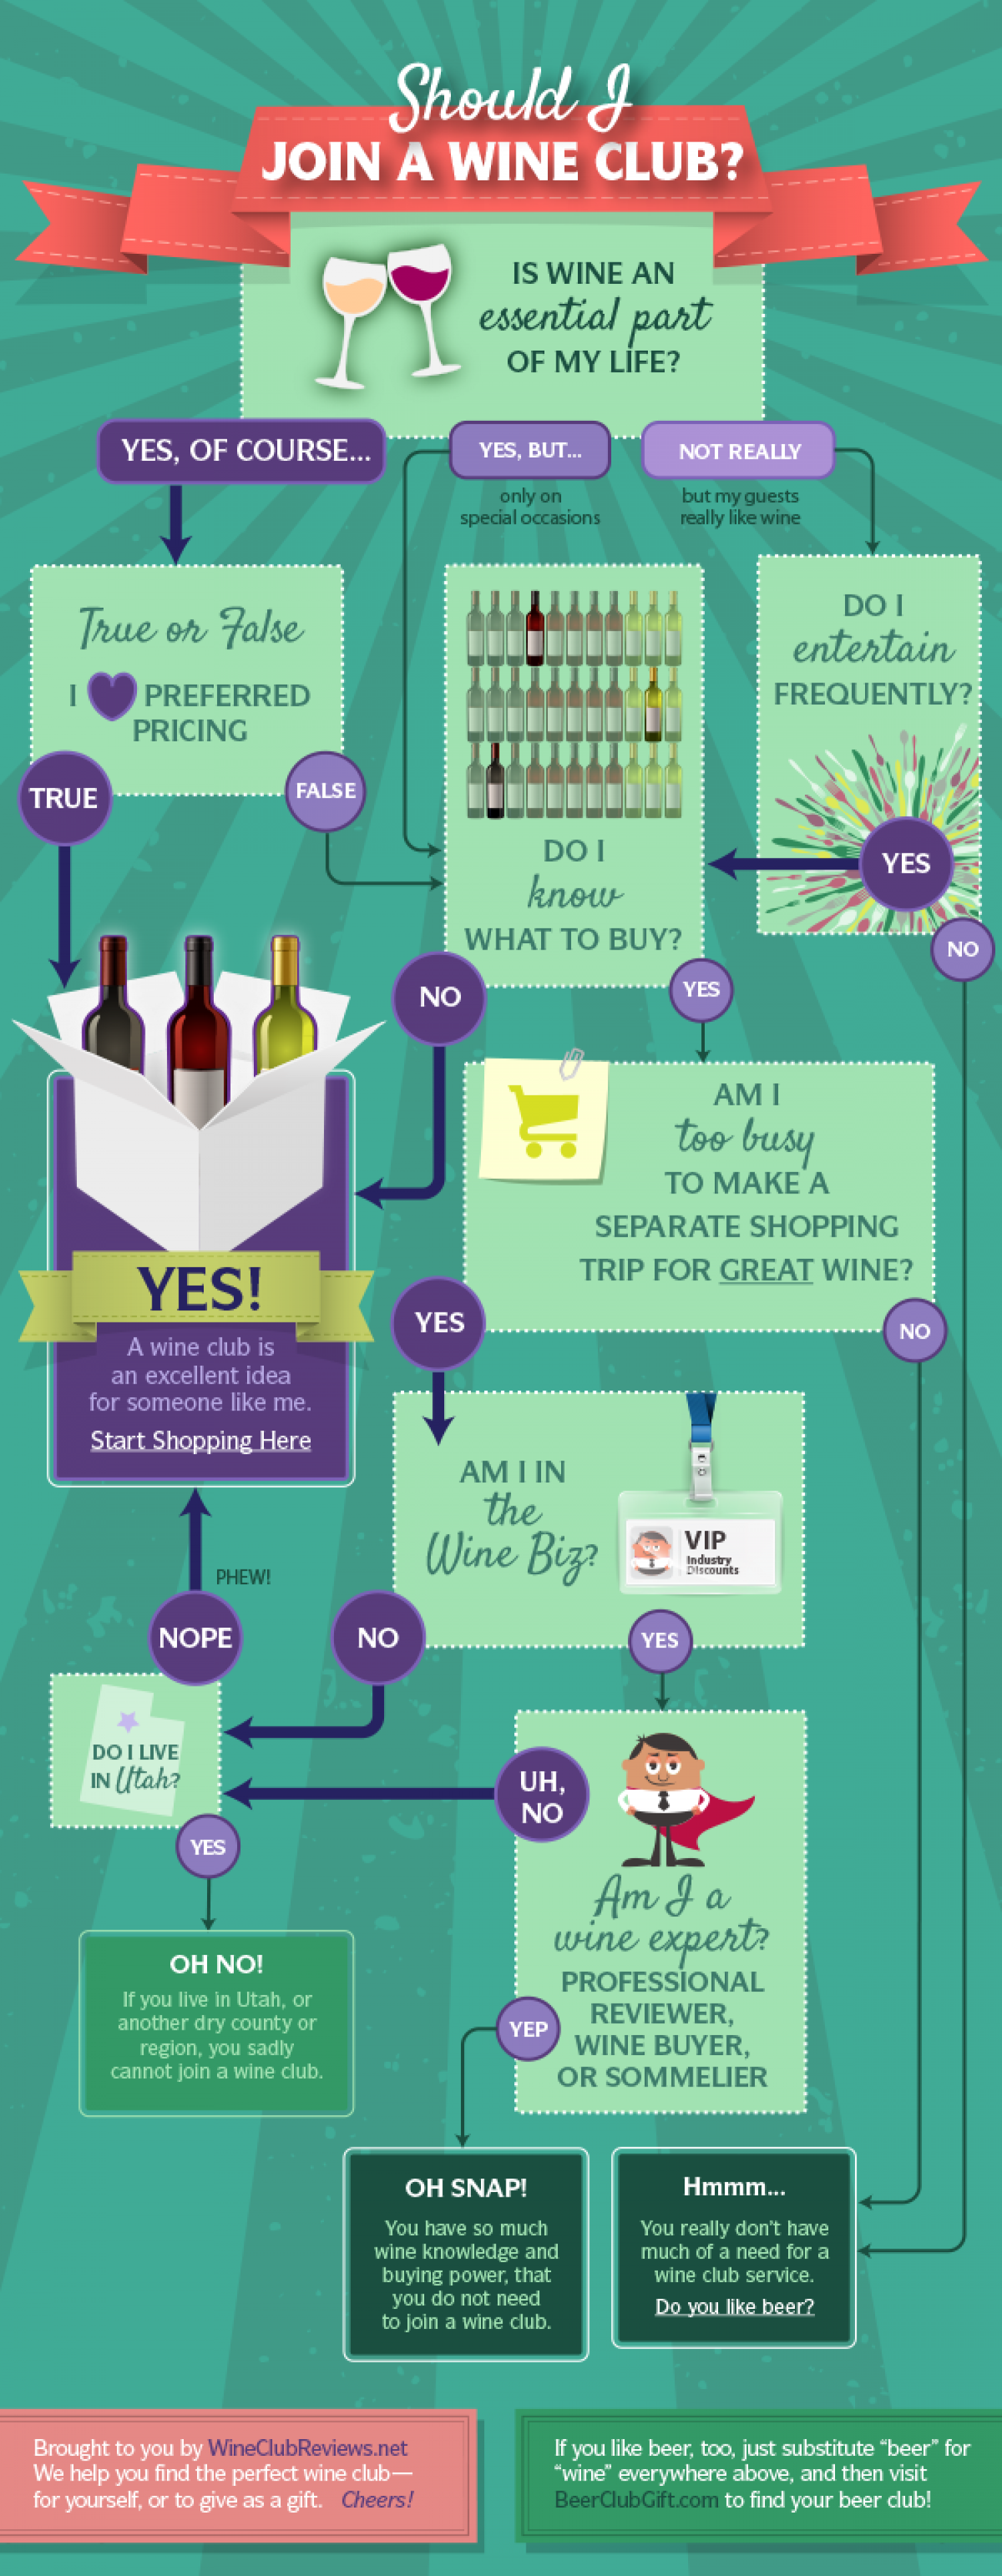 Should I Join a Wine Club? Infographic